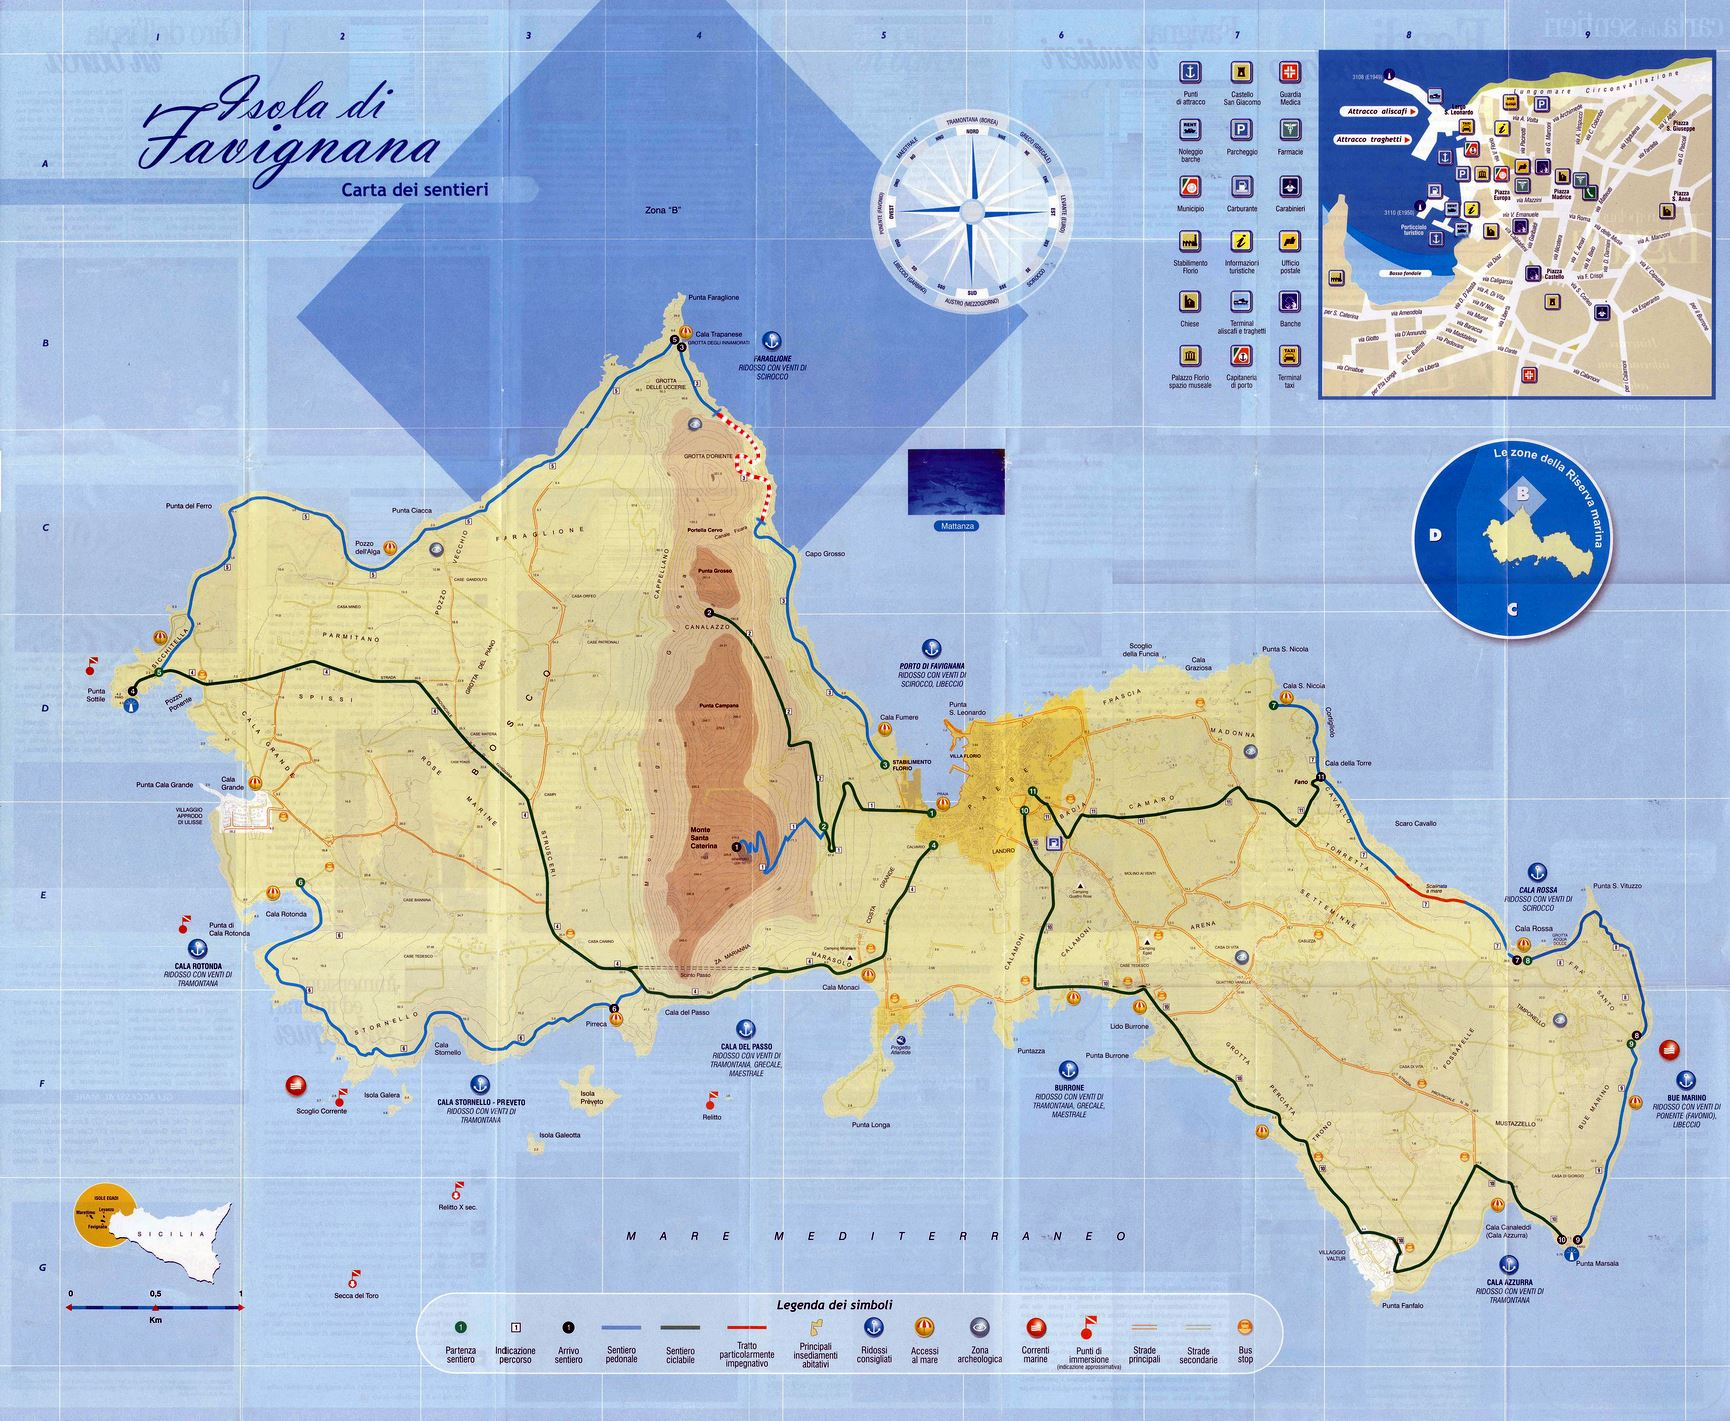 Large Favignana Island Maps for Free Download and Print High